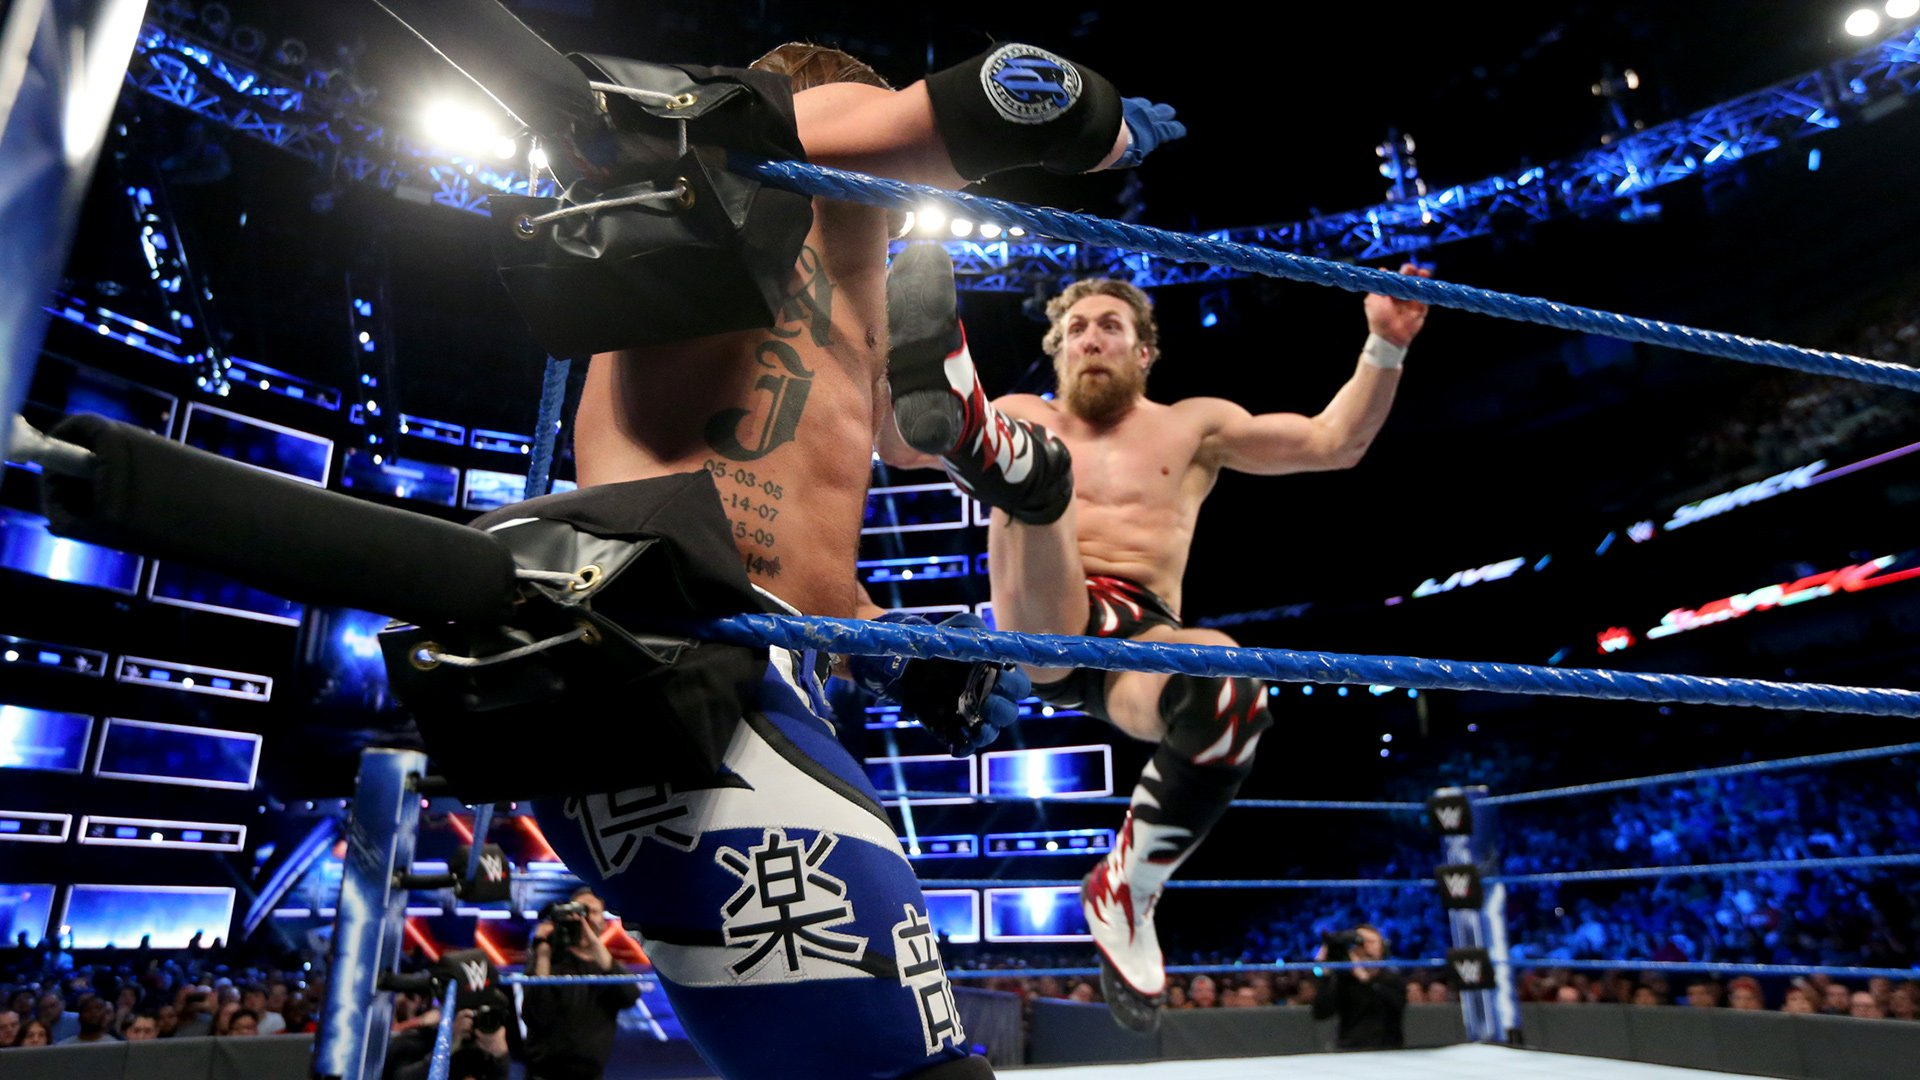 Daniel Bryan vs. AJ Styles: photos